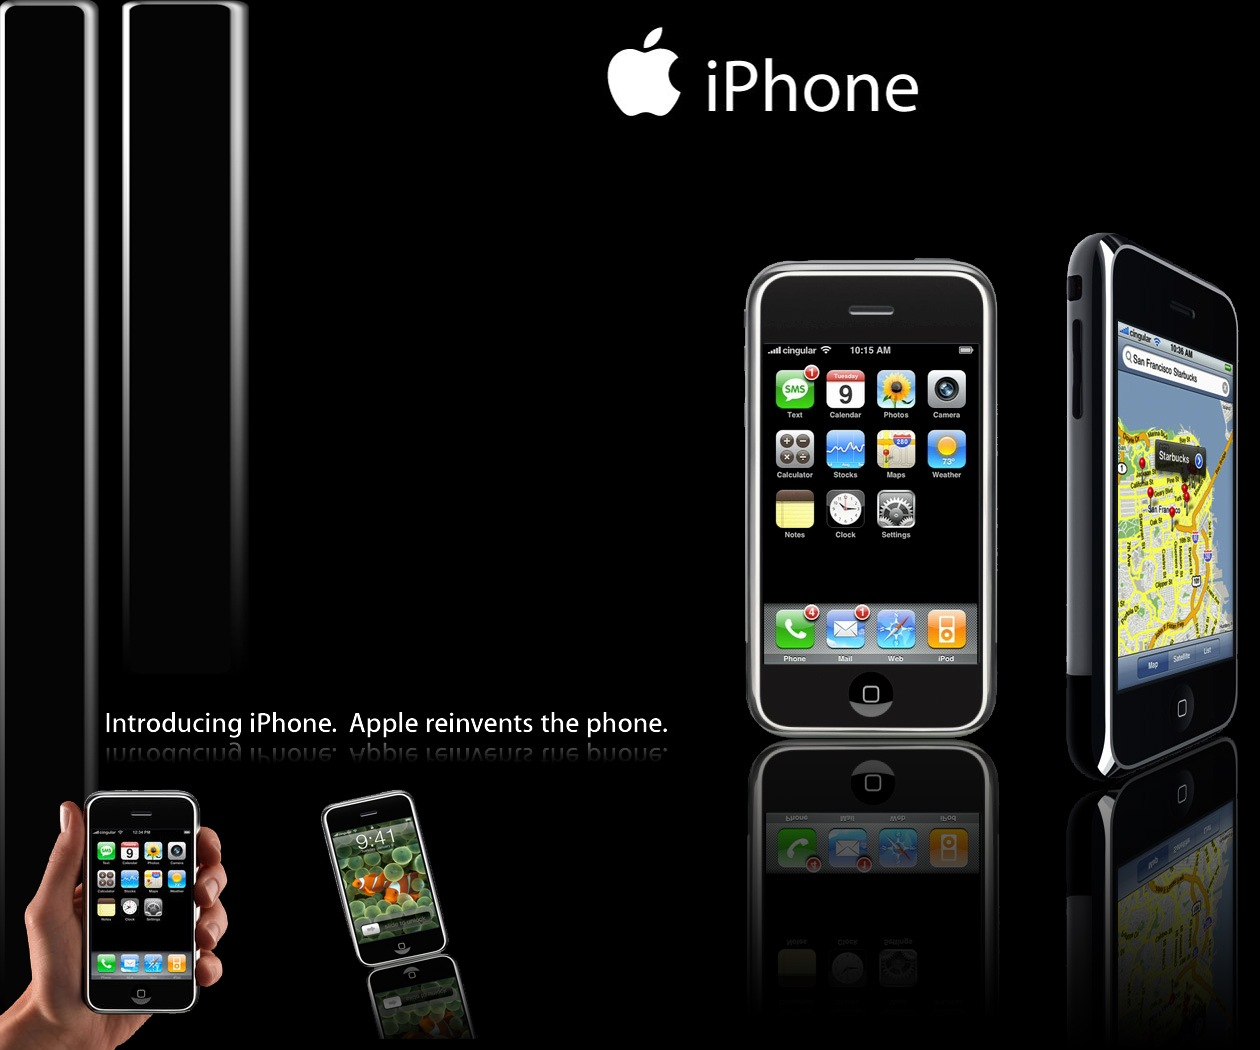 Iphone Wallpapers,iPhone Themes,iphone Ringtones,iPhone